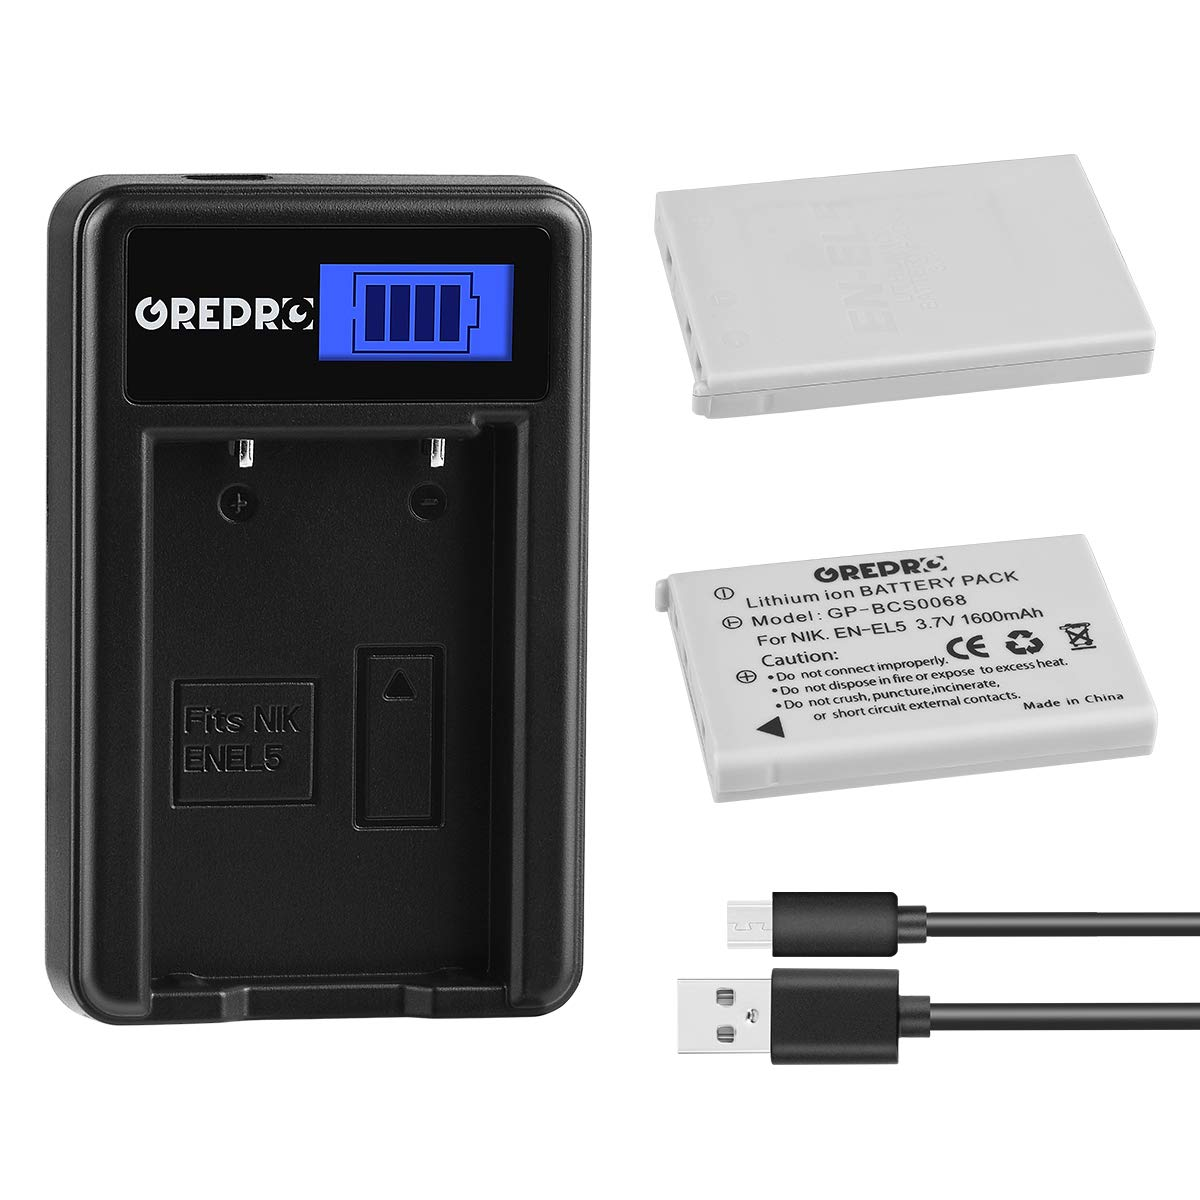 Grepro EN-EL5 Battery (2 Packs) and LCD USB Charger for EN-EL5 and Nikon Coolpix 3700, 4200, 5200, 5900, 7900, P3, P4, P80, P90, P100, P500, P510, P520, P530, P5000, P5100, P6000, S10 by GREPRO